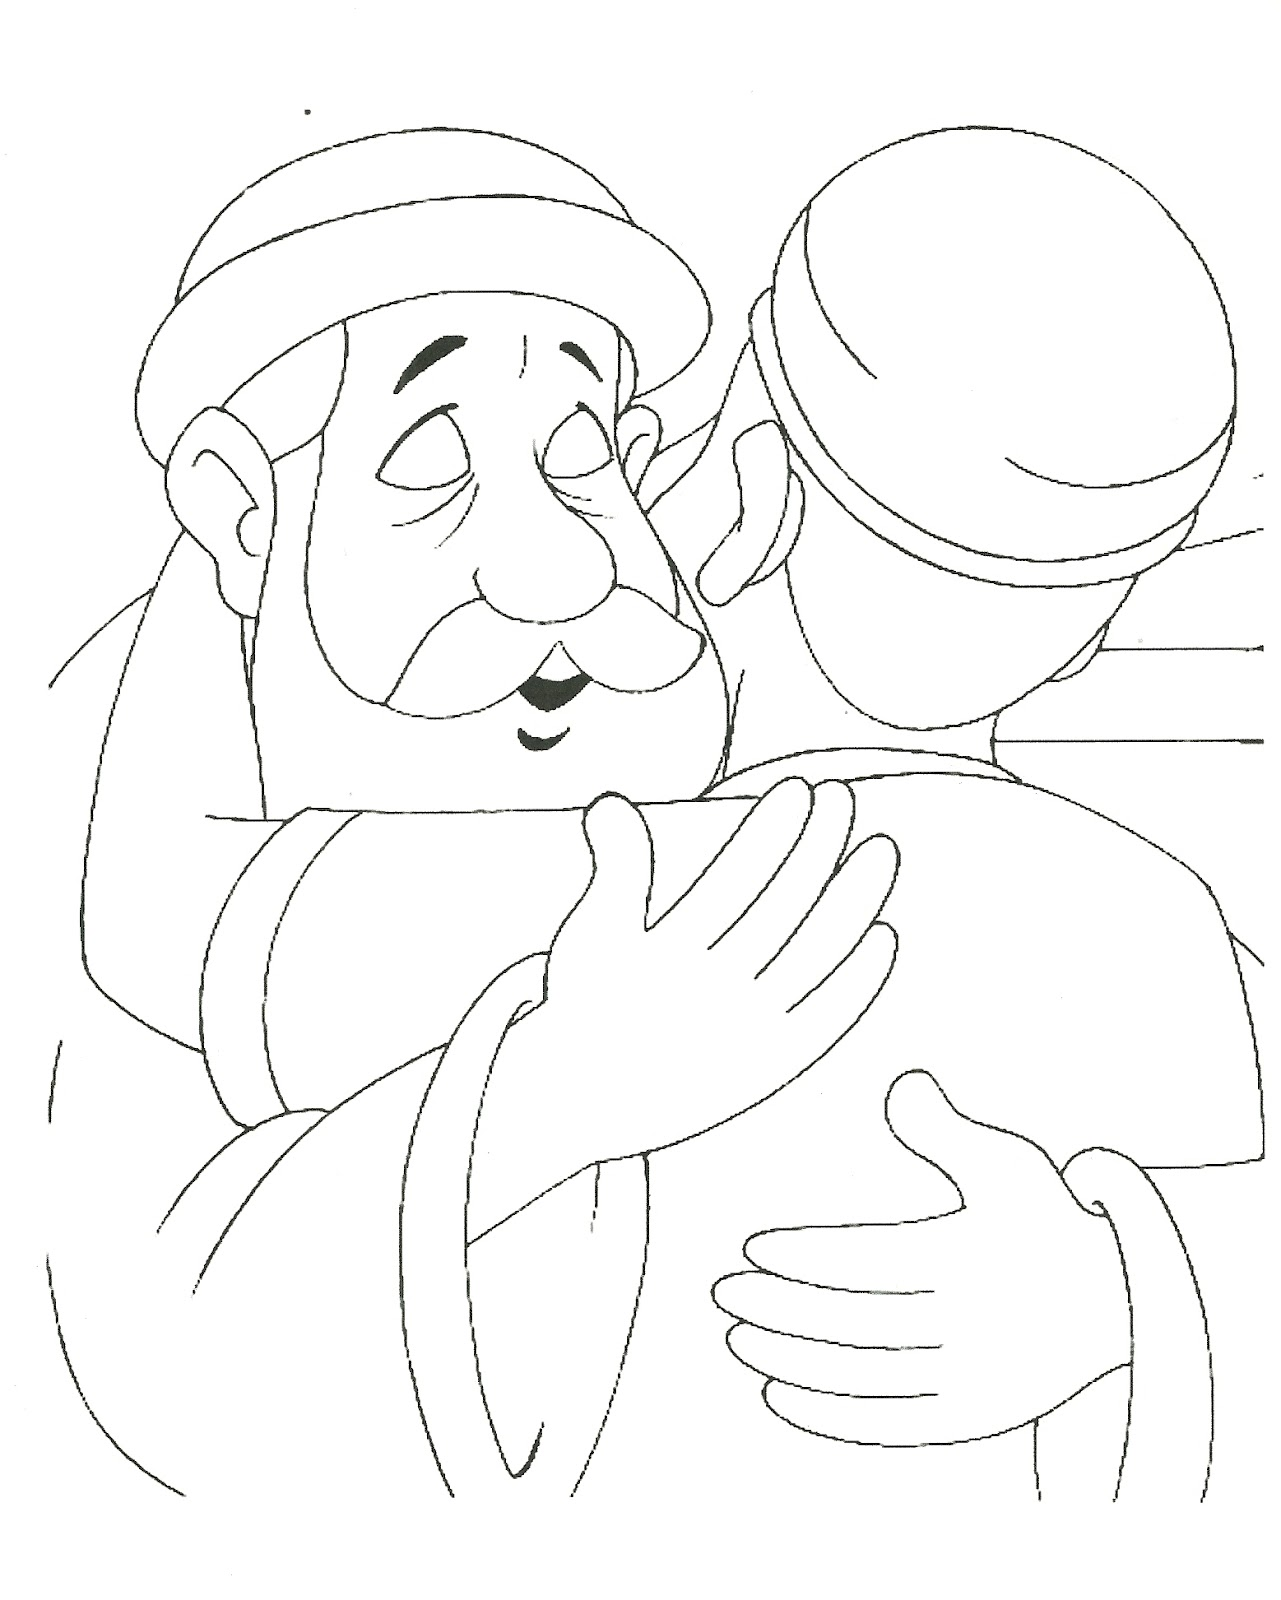 tubby the tuba coloring pages - photo#8